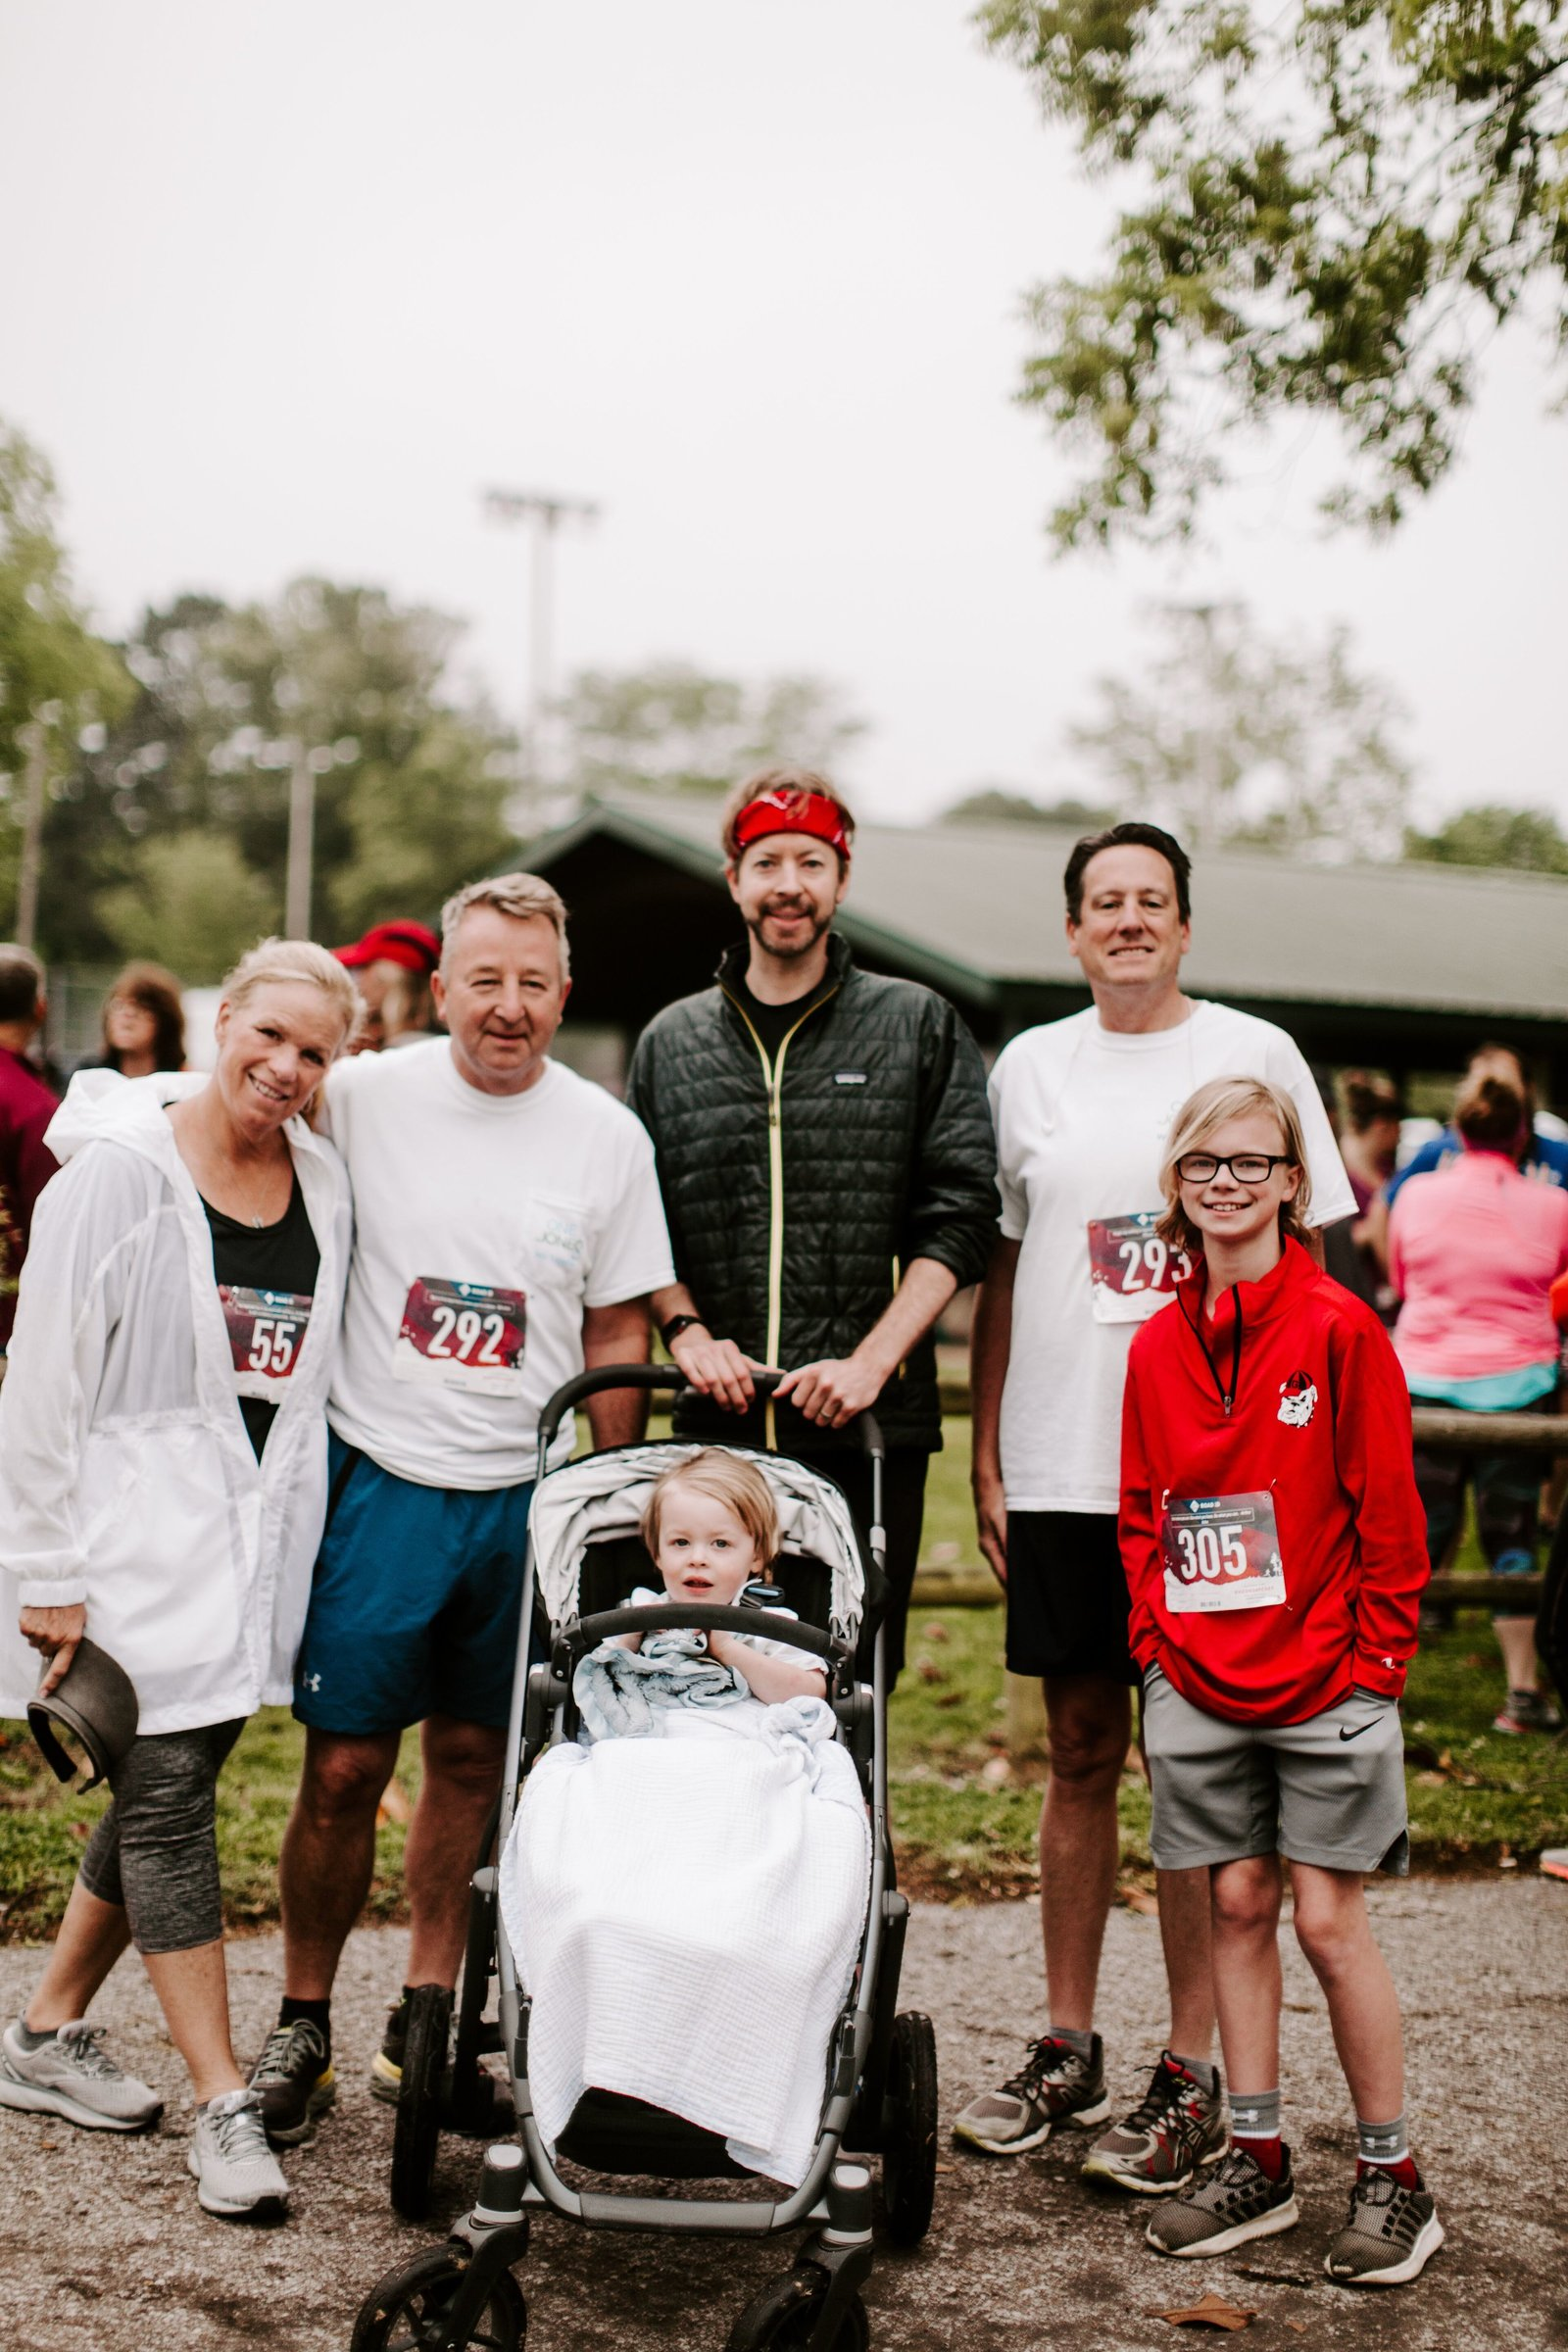 2019 West Tennessee Strawberry Festival - 5k Race - 43